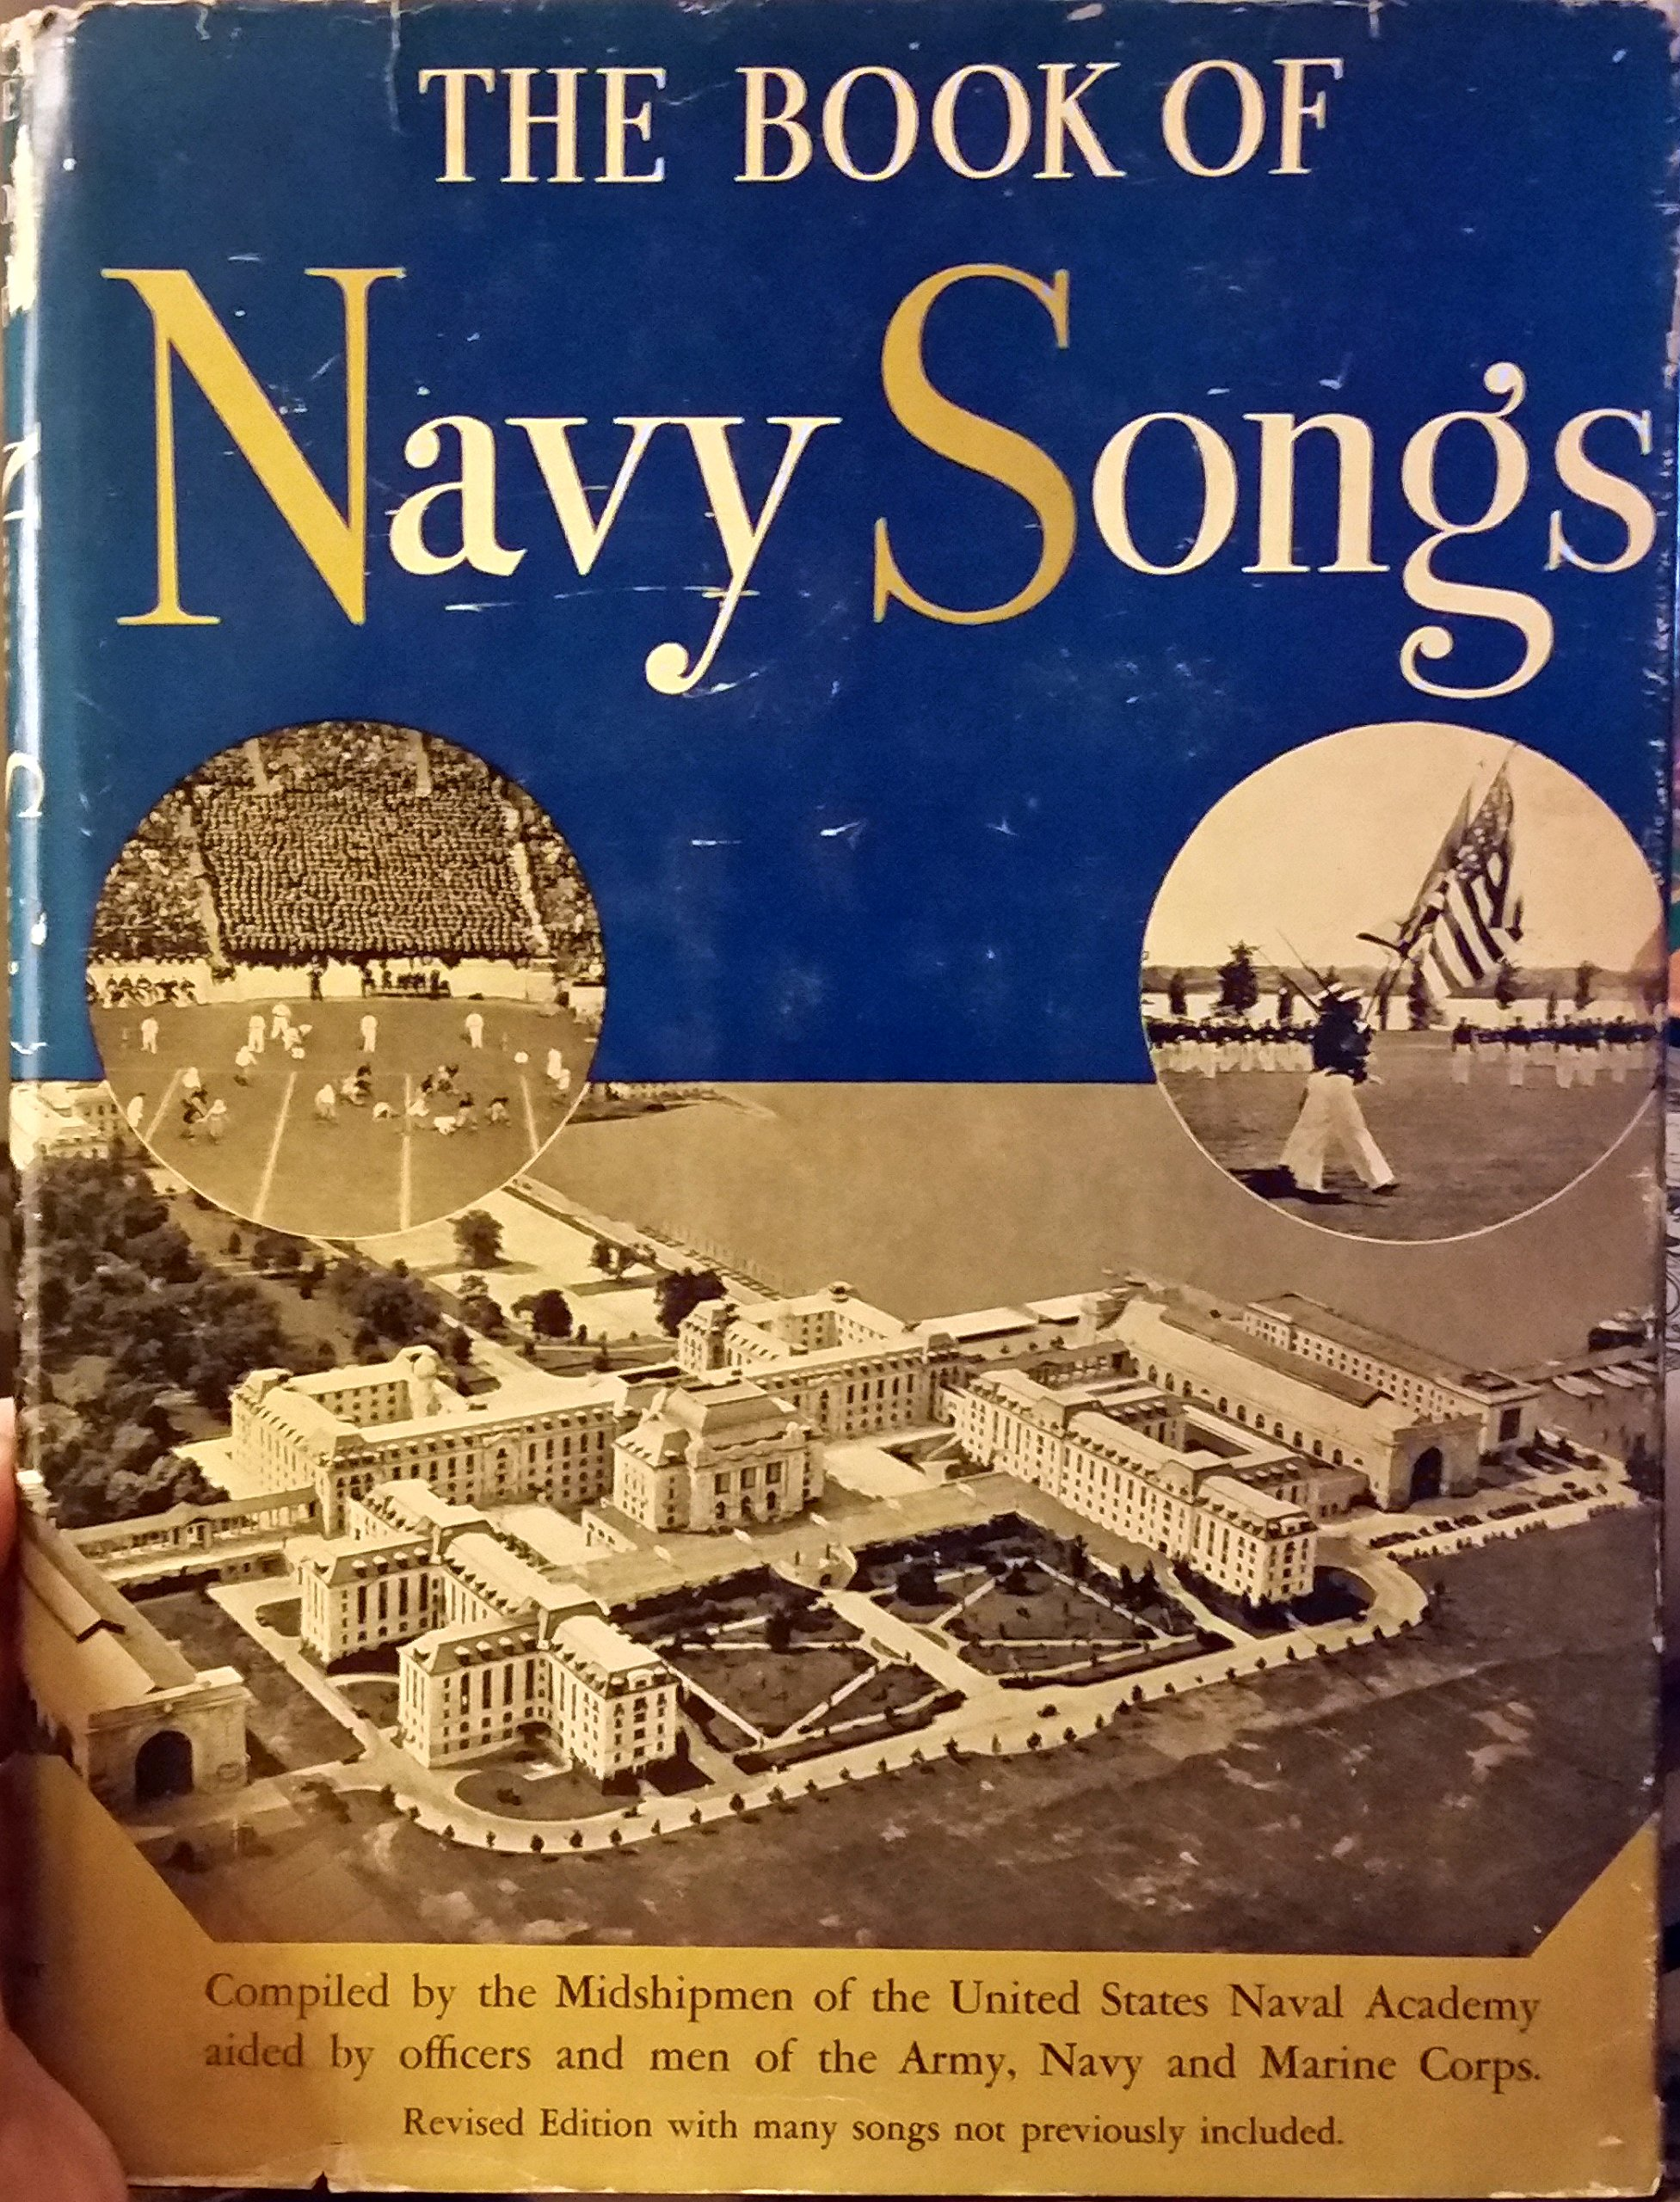 The Book of Navy Songs